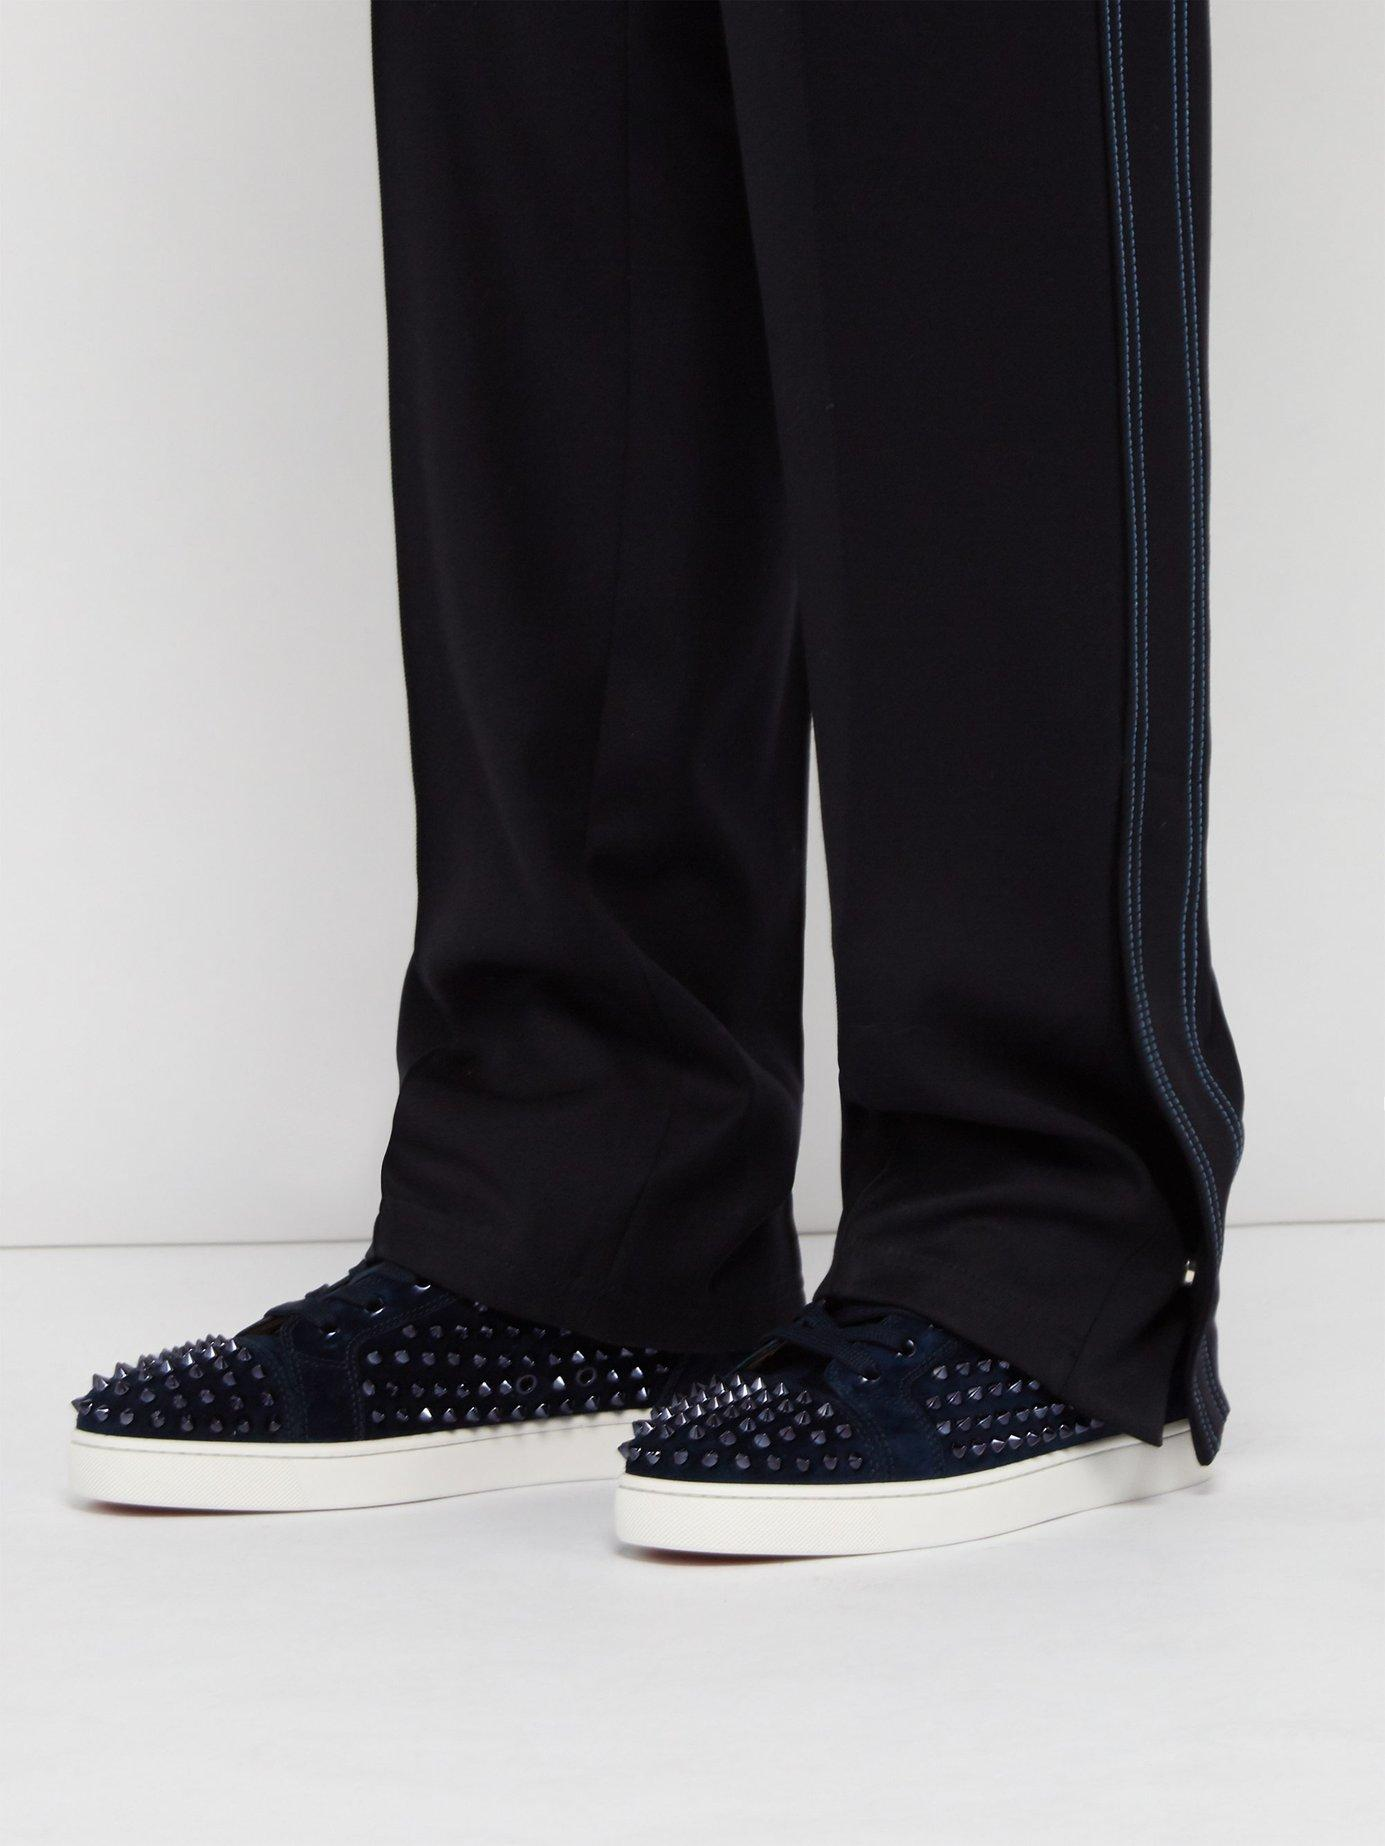 5ba5e079365 Lyst - Christian Louboutin Louis Spiked Leather High Top Trainers in Blue  for Men